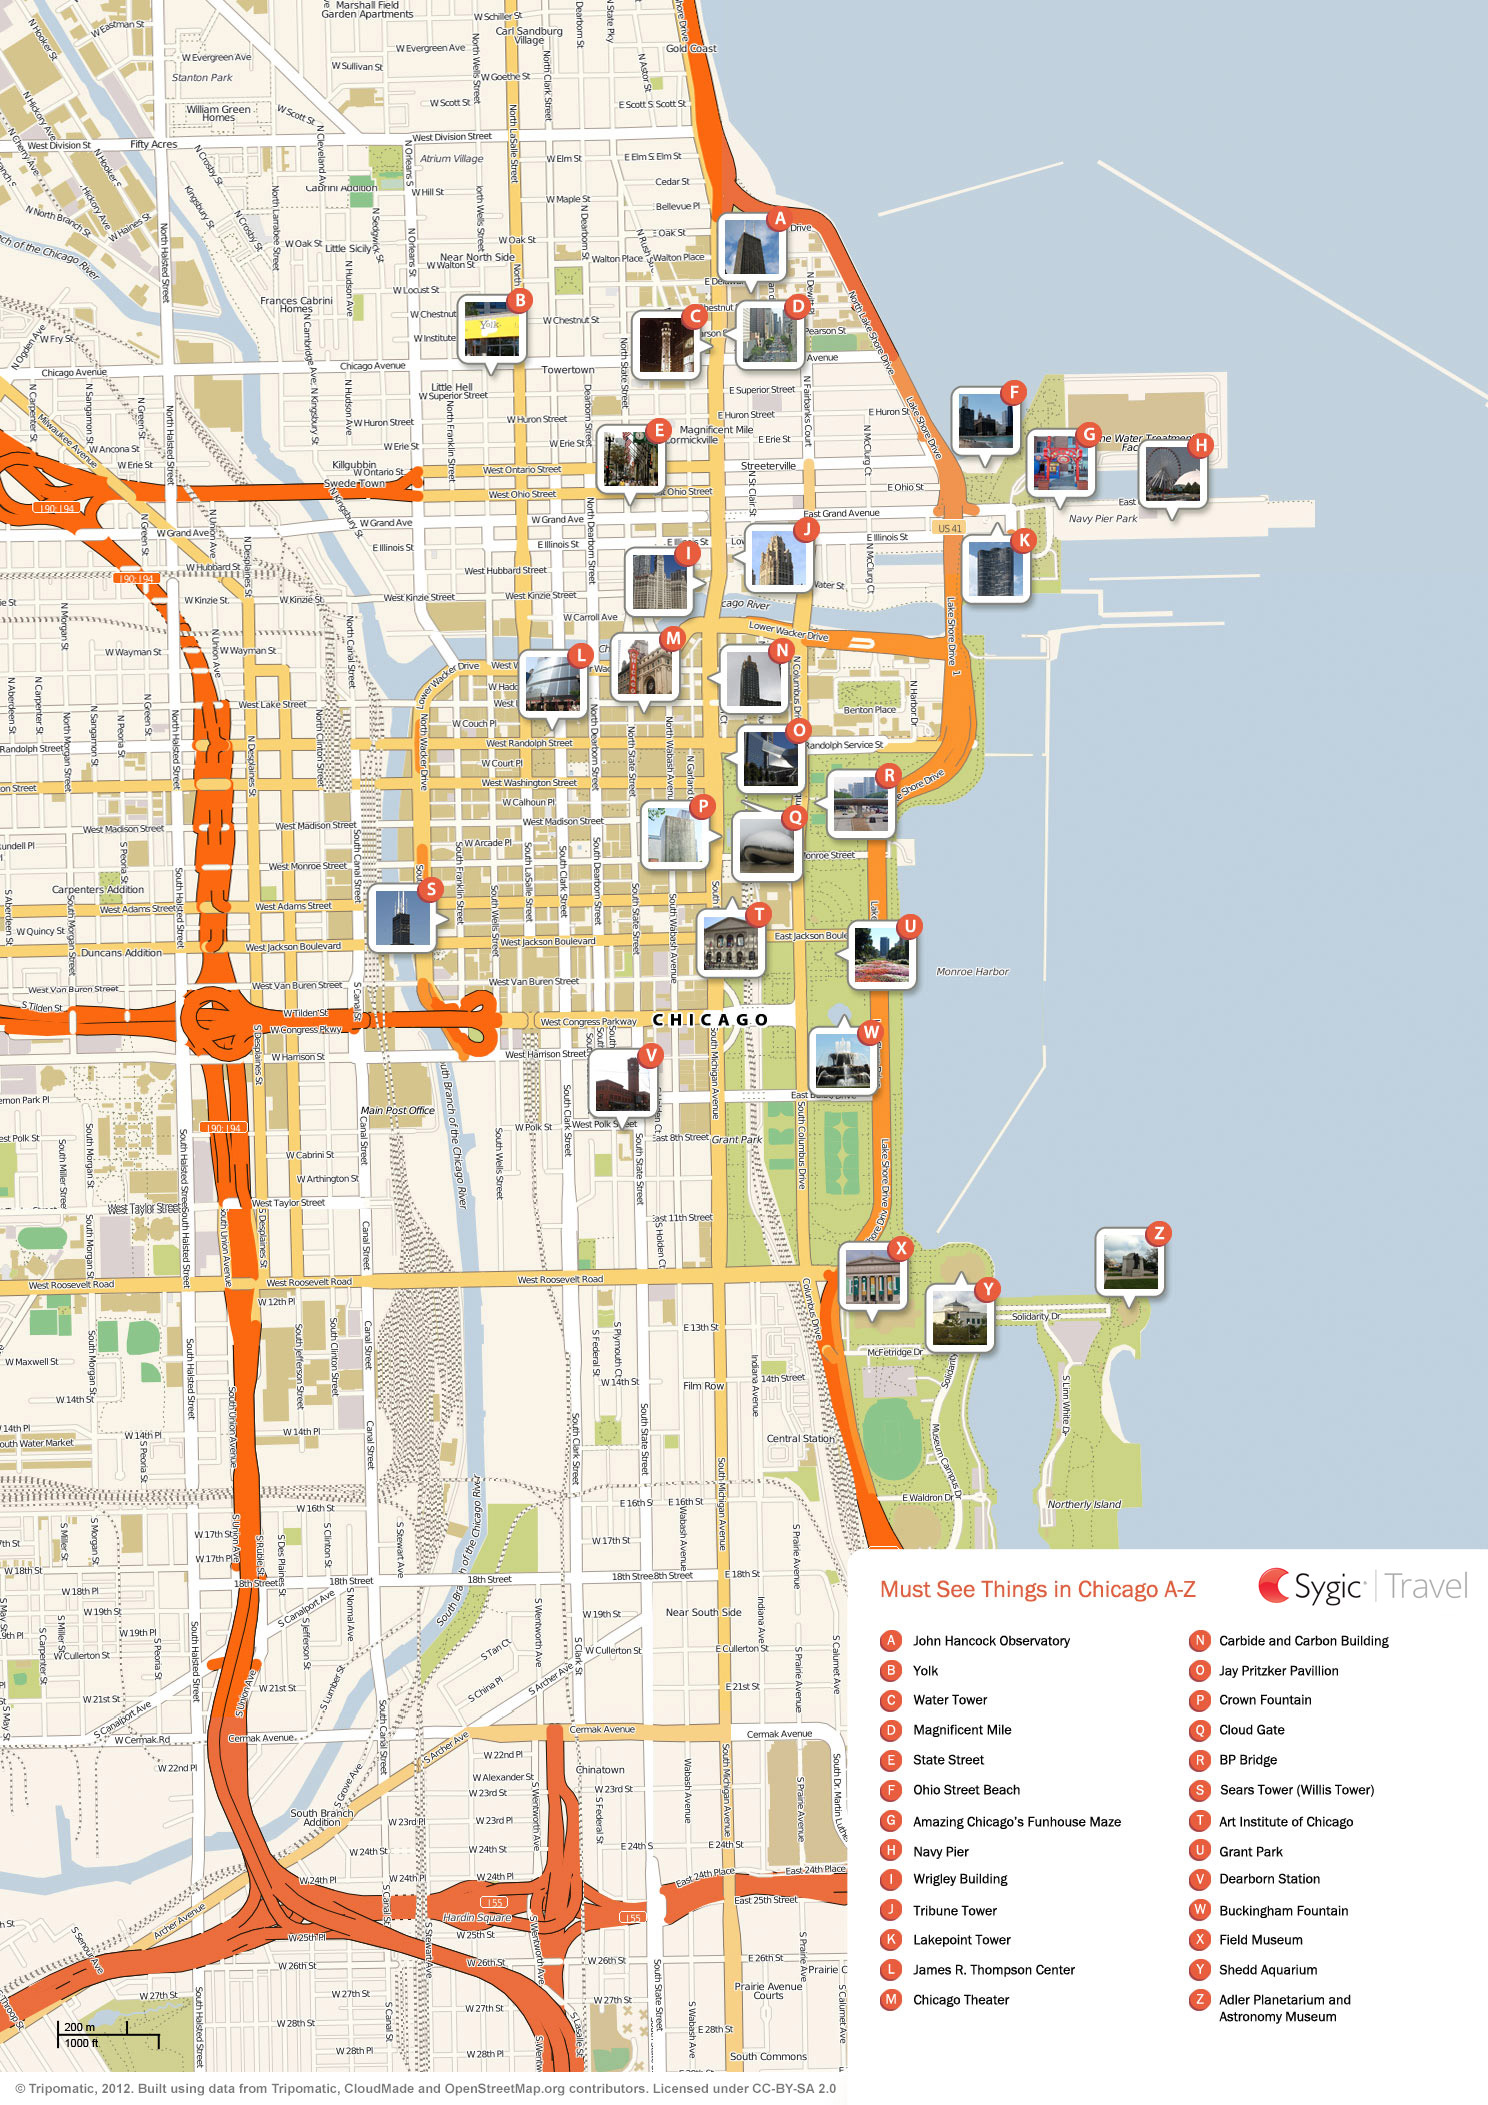 Chicago Printable Tourist Map – Chicago Tourist Attractions Map